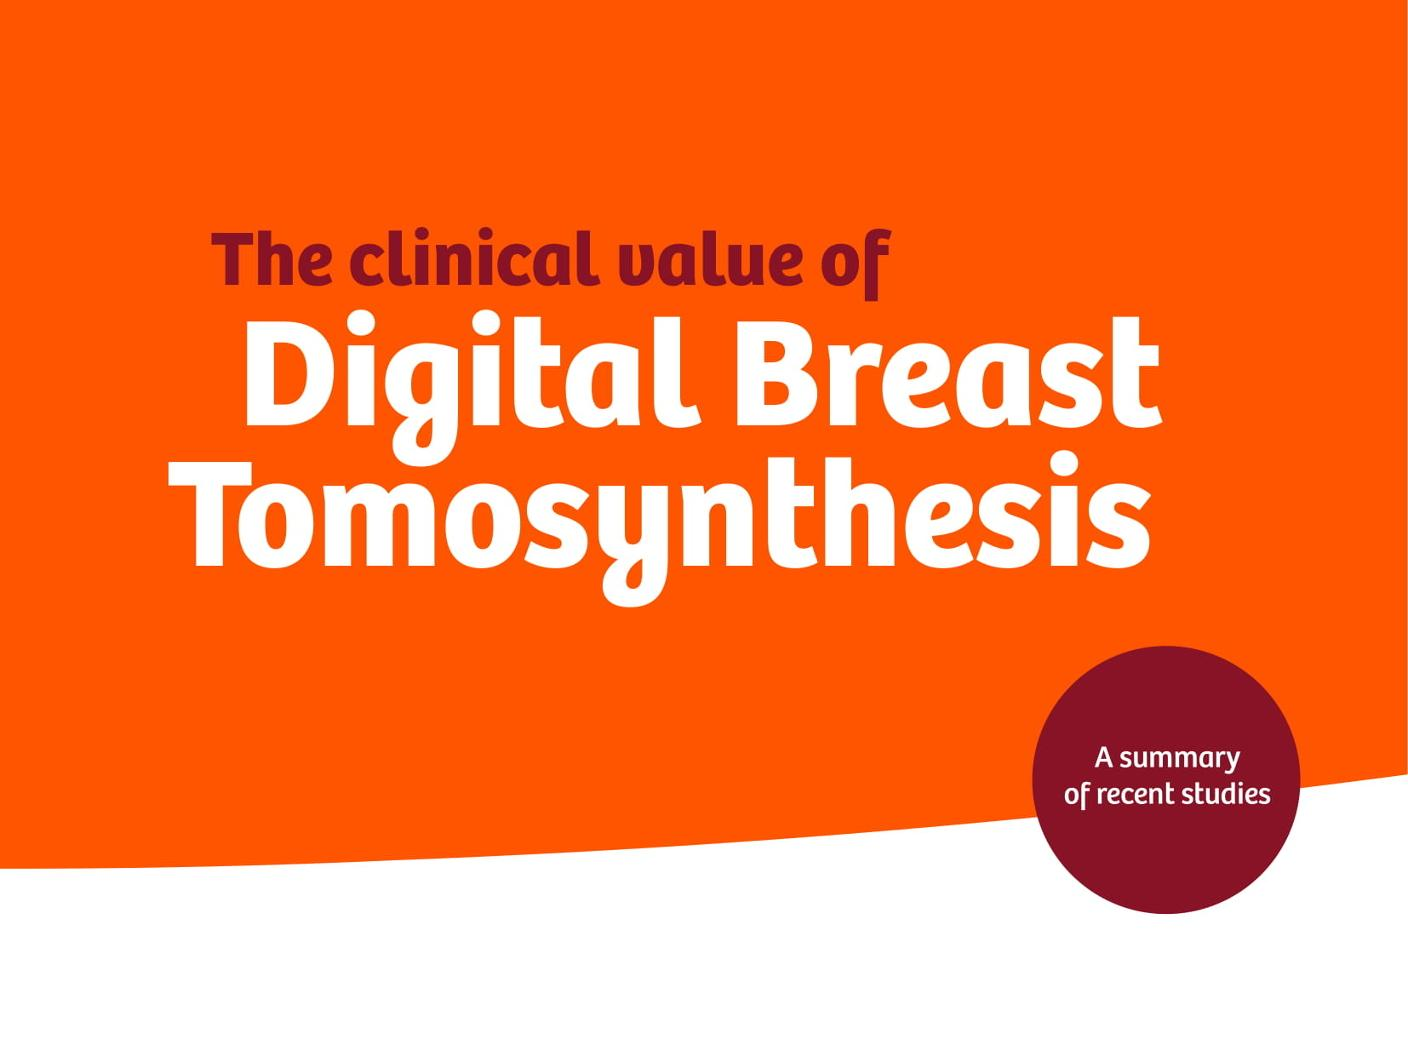 clinical value of Digital Breast Tomosynthesis